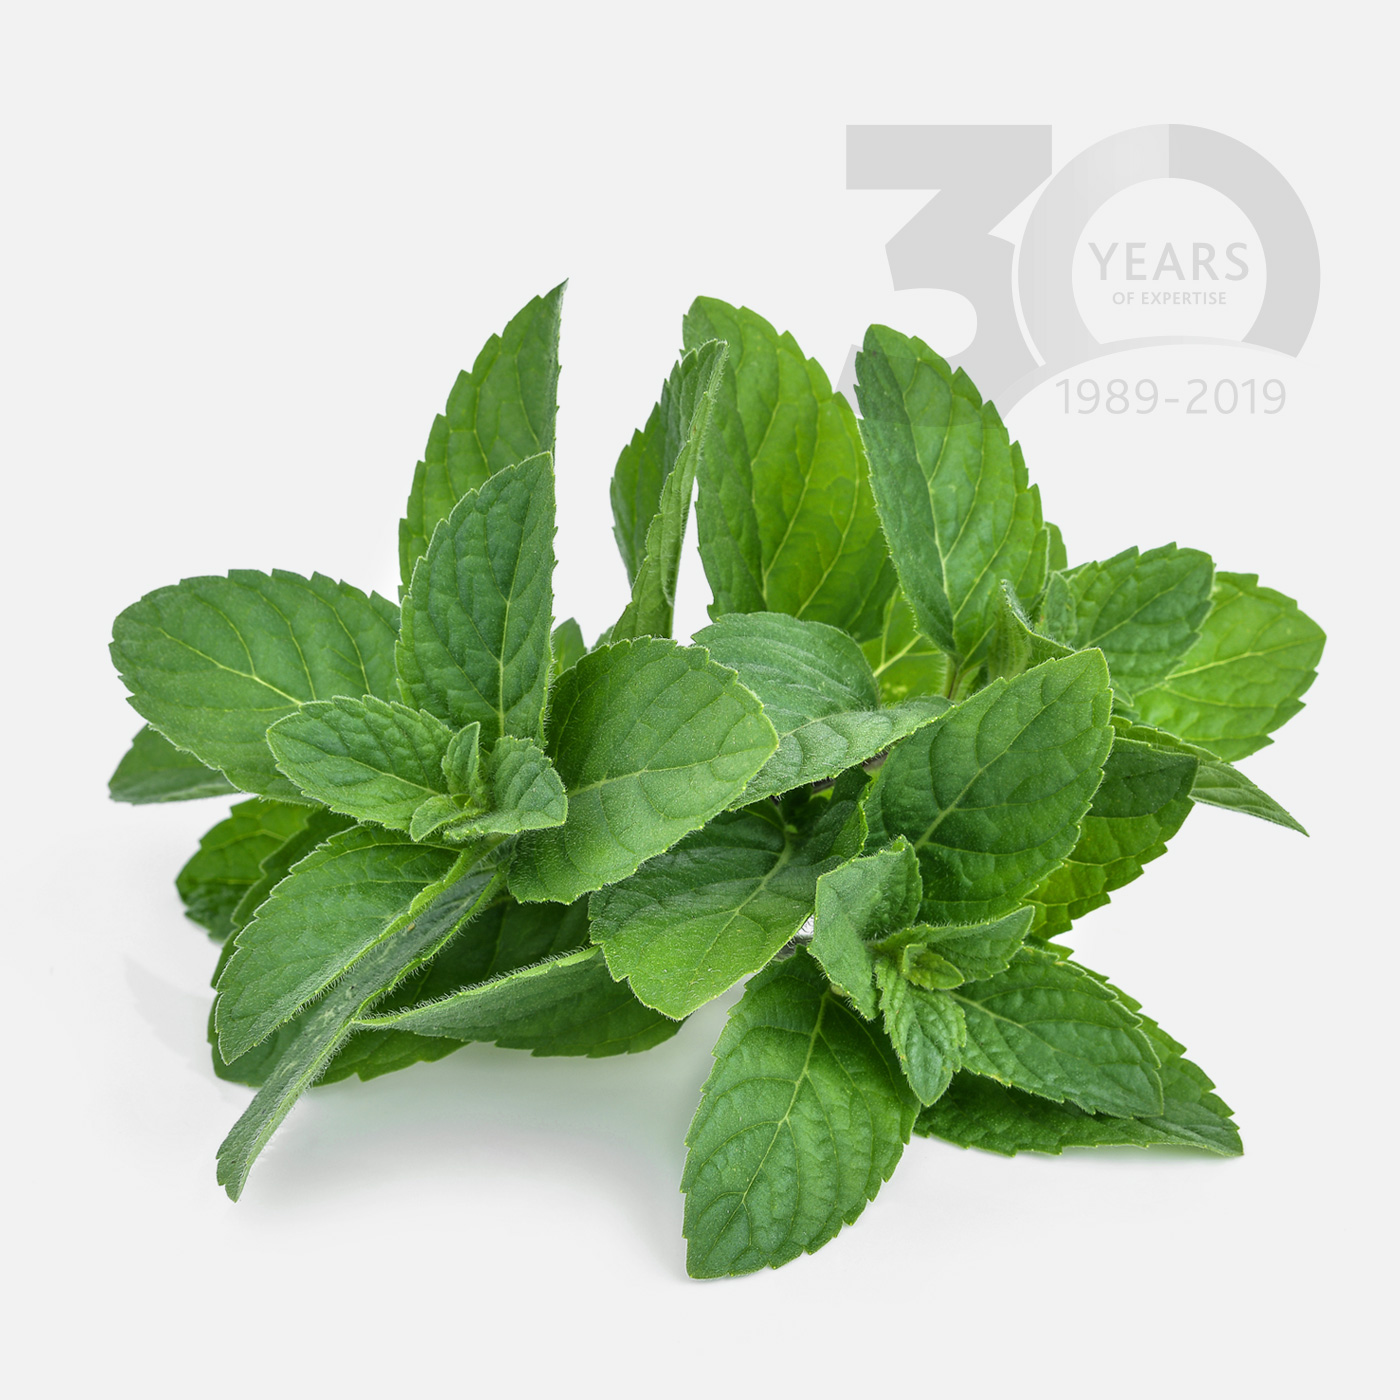 Using mint, unlock the possibilities for flavours, aromas and sweeteners in animal feed and pet food production